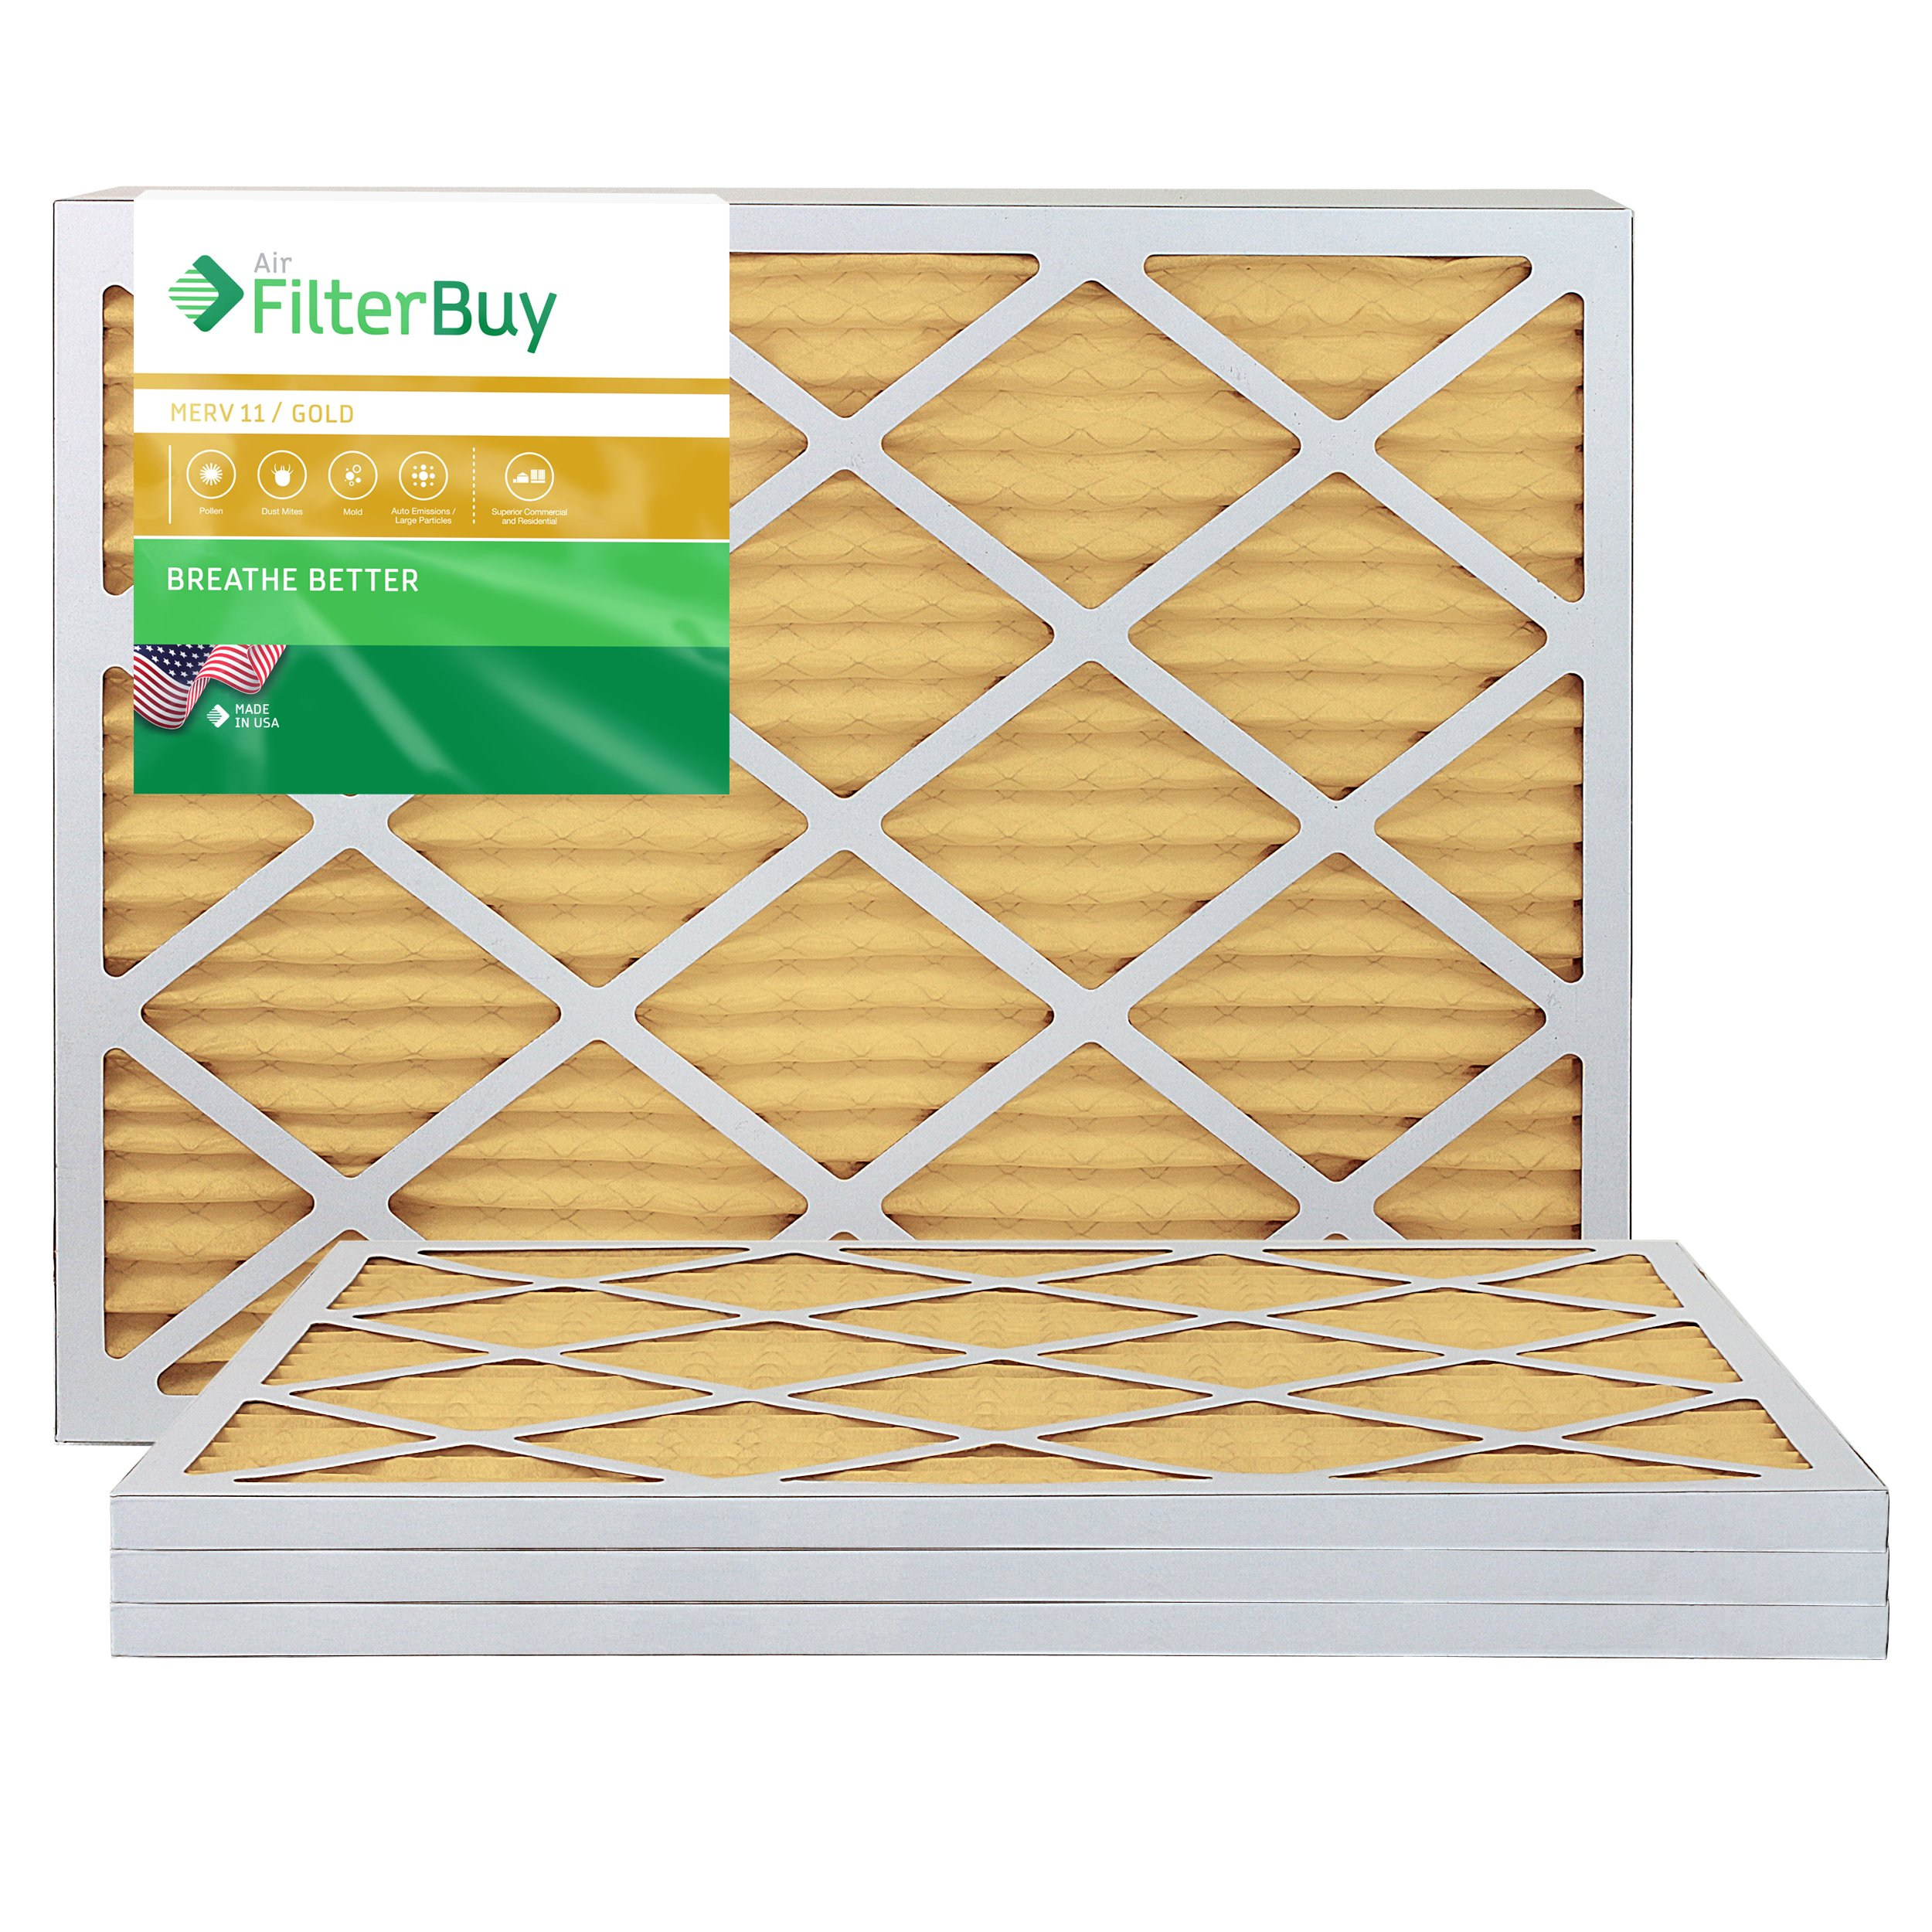 FilterBuy 16x24x1 MERV 11 Pleated AC Furnace Air Filter, (Pack of 4 Filters), 16x24x1 – Gold